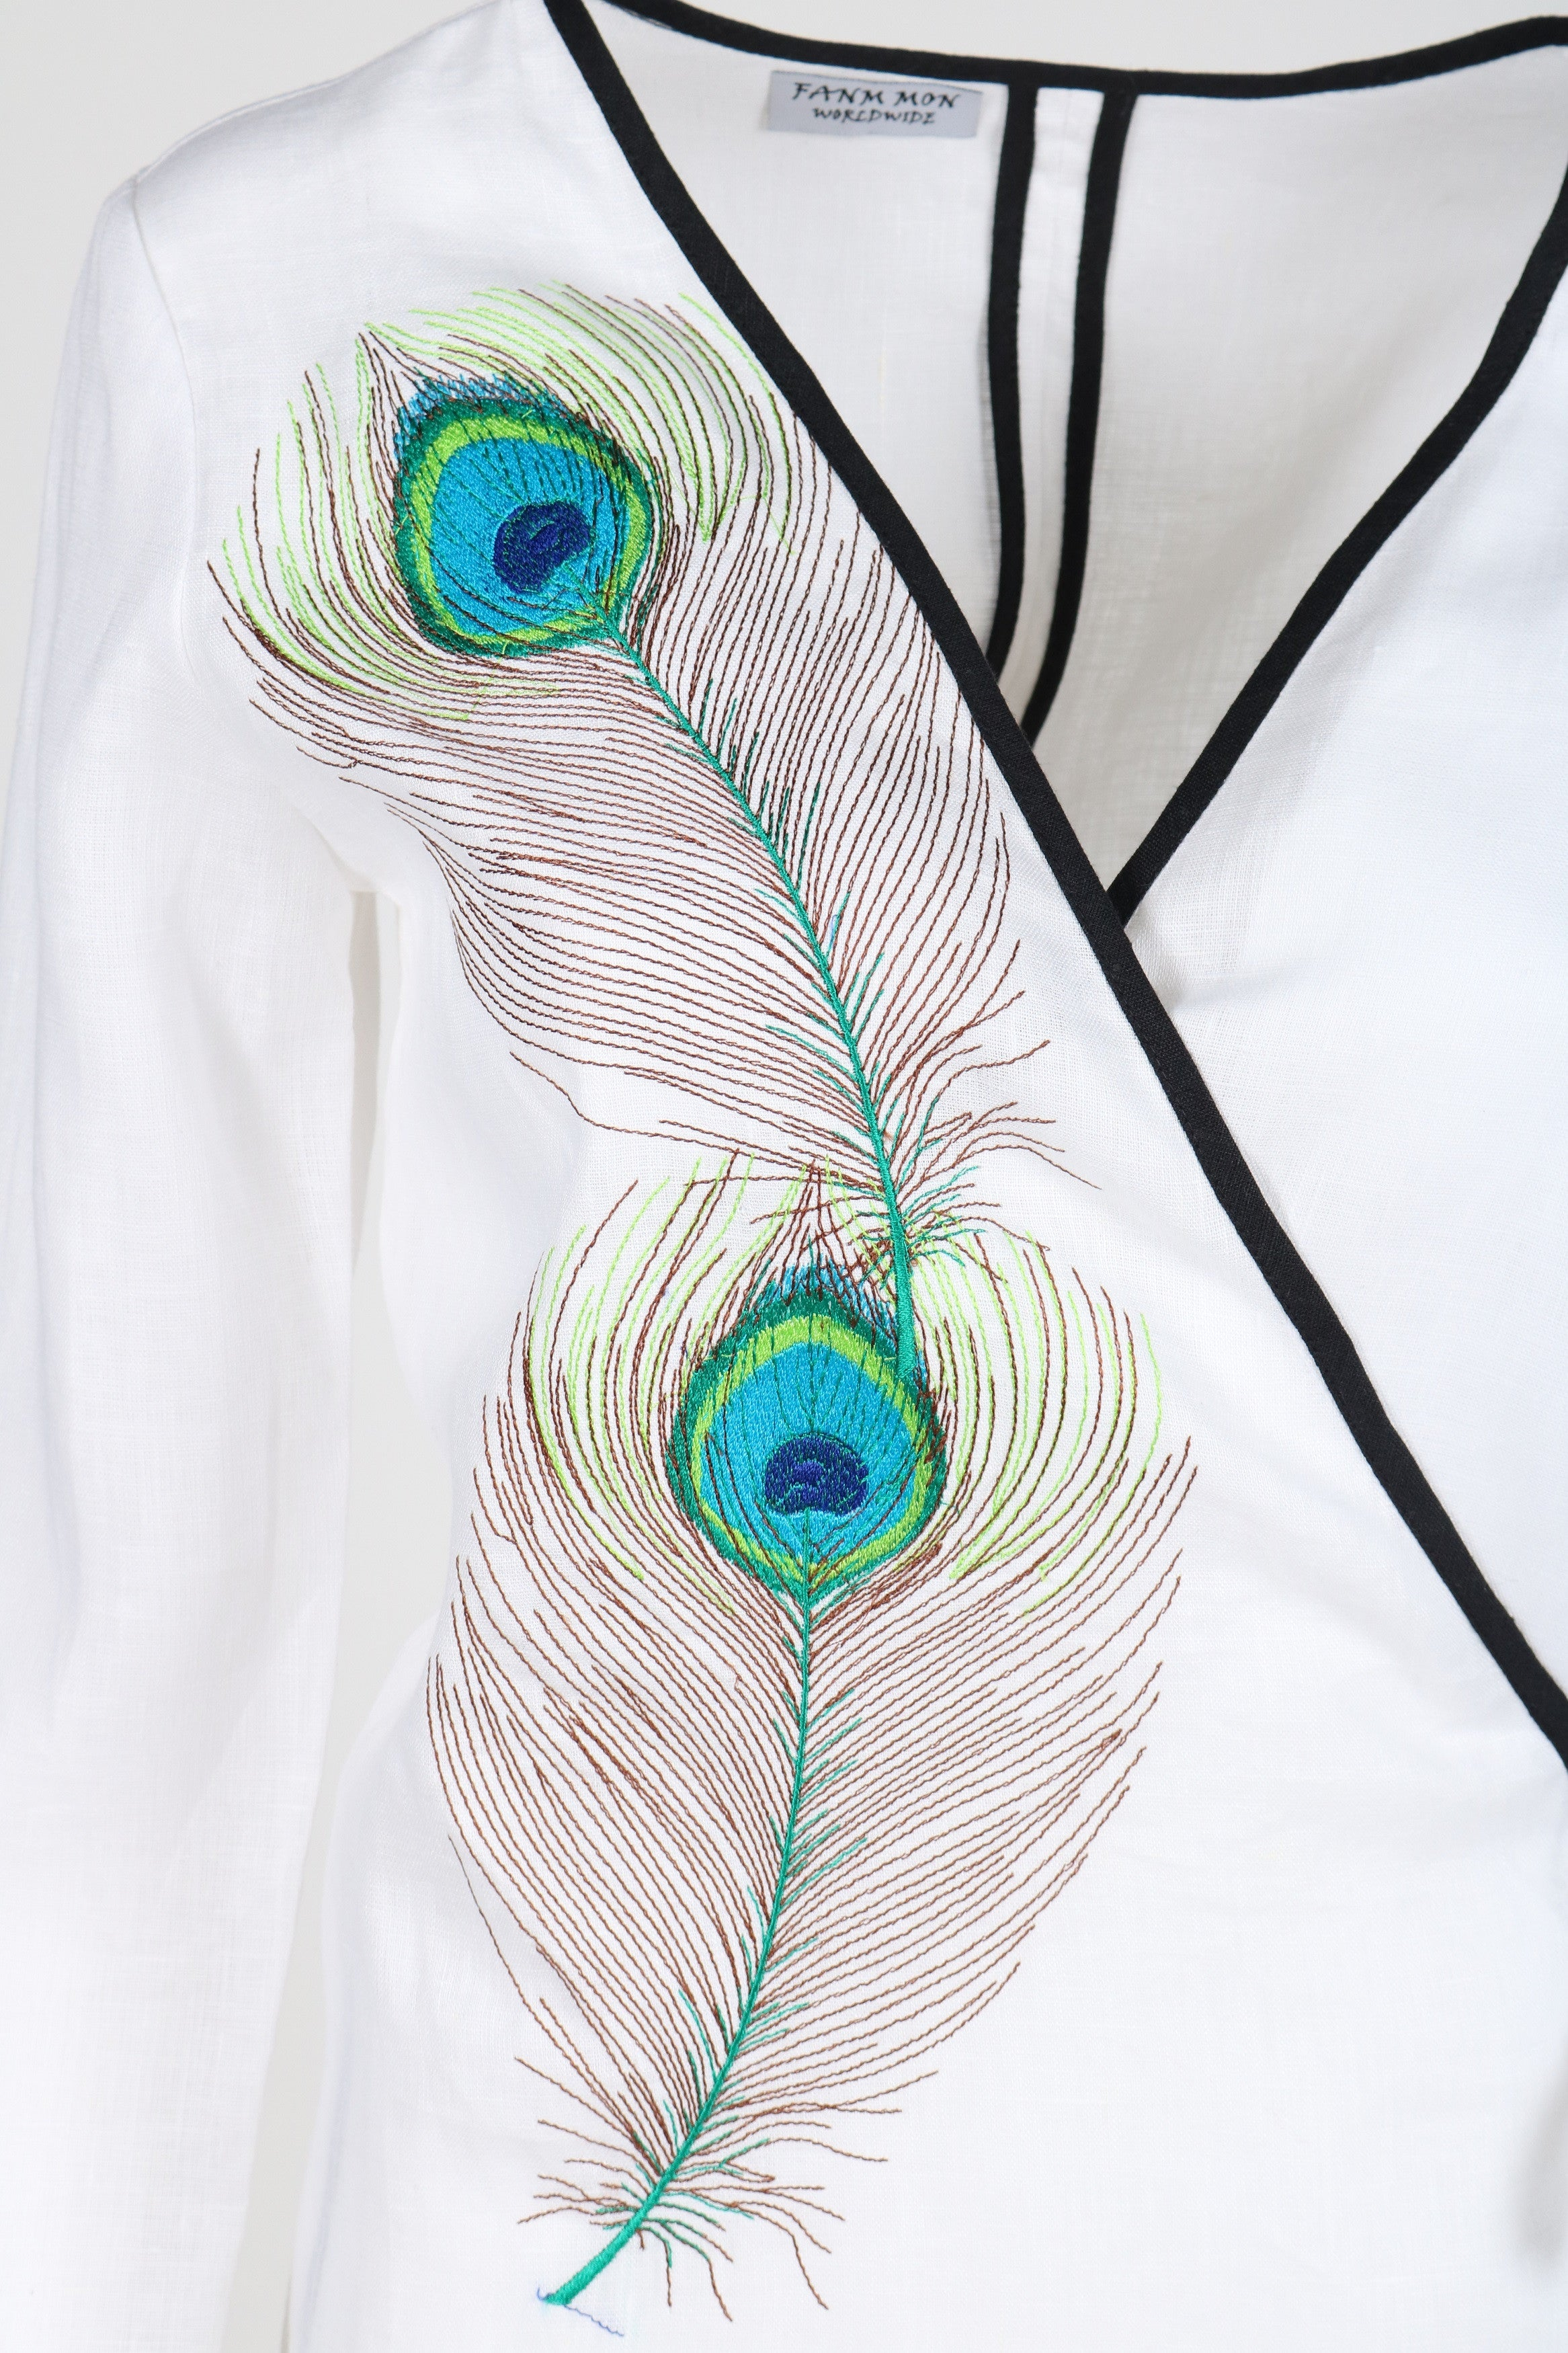 Fanm Mon AKOTE White Linen Peacock Feathers Embroidery Vyshyvanka MINI Dress size XS-XXL